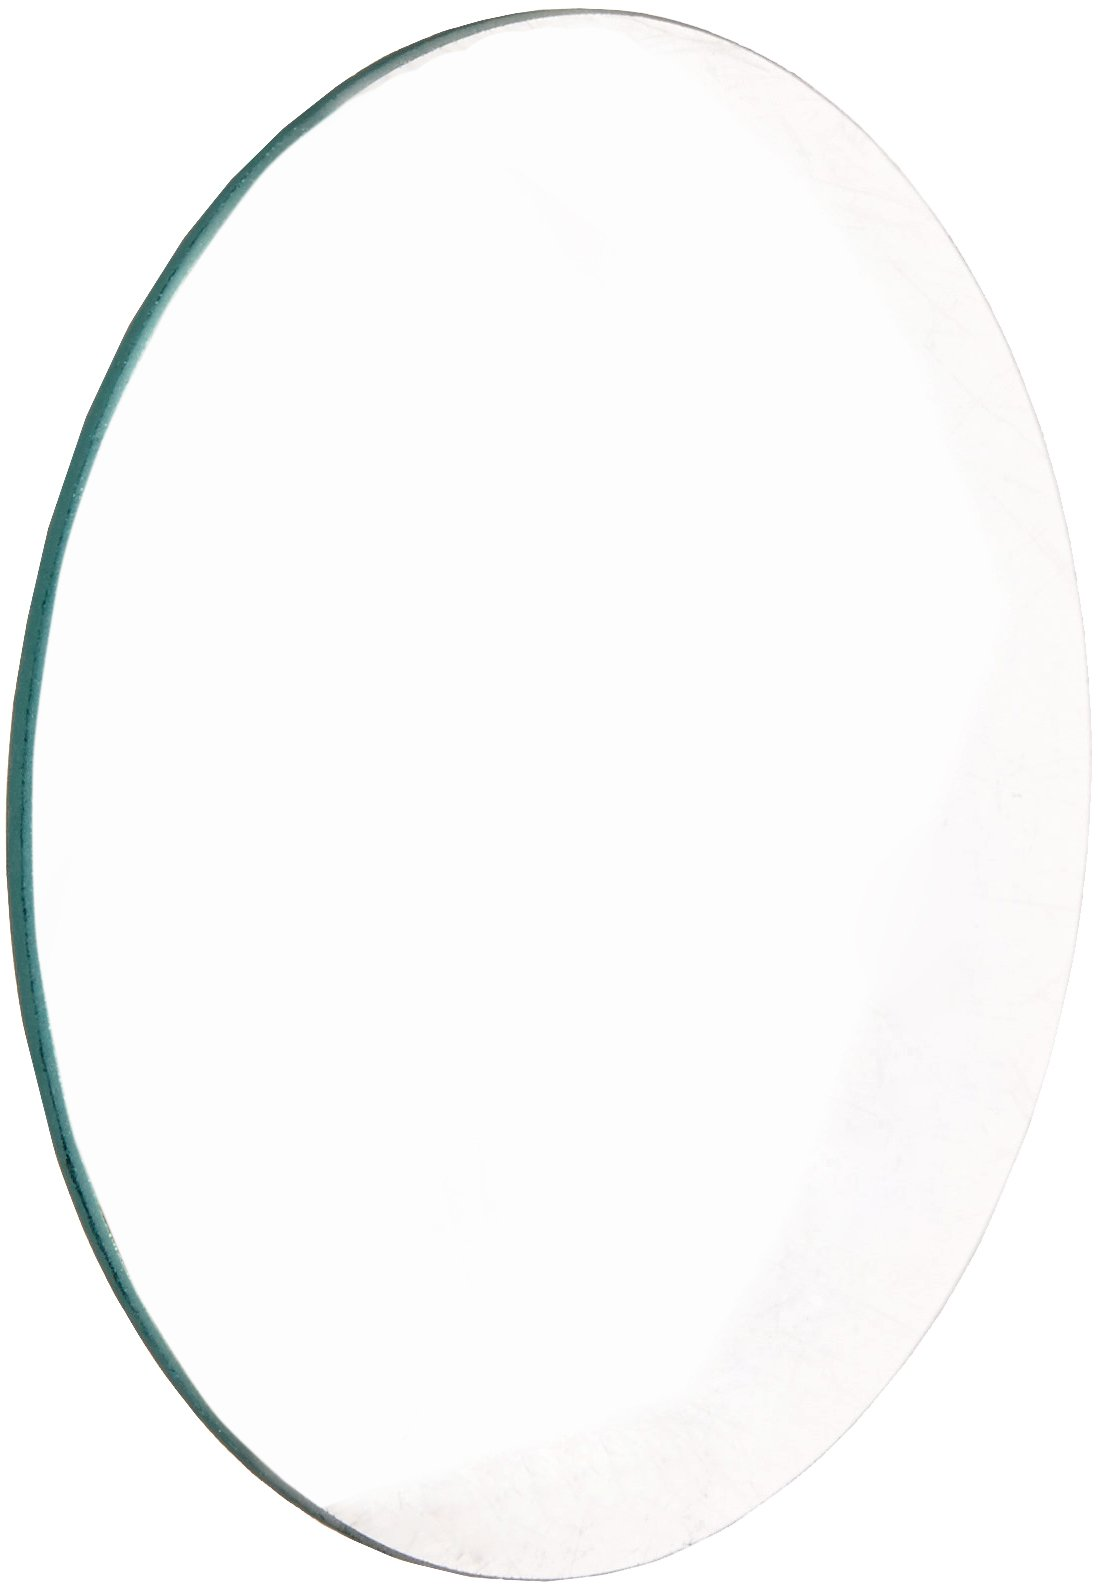 United Scientific LCV108 Glass Double Convex Lens, 100mm Diameter, 200mm Focal Length by United Scientific Supplies